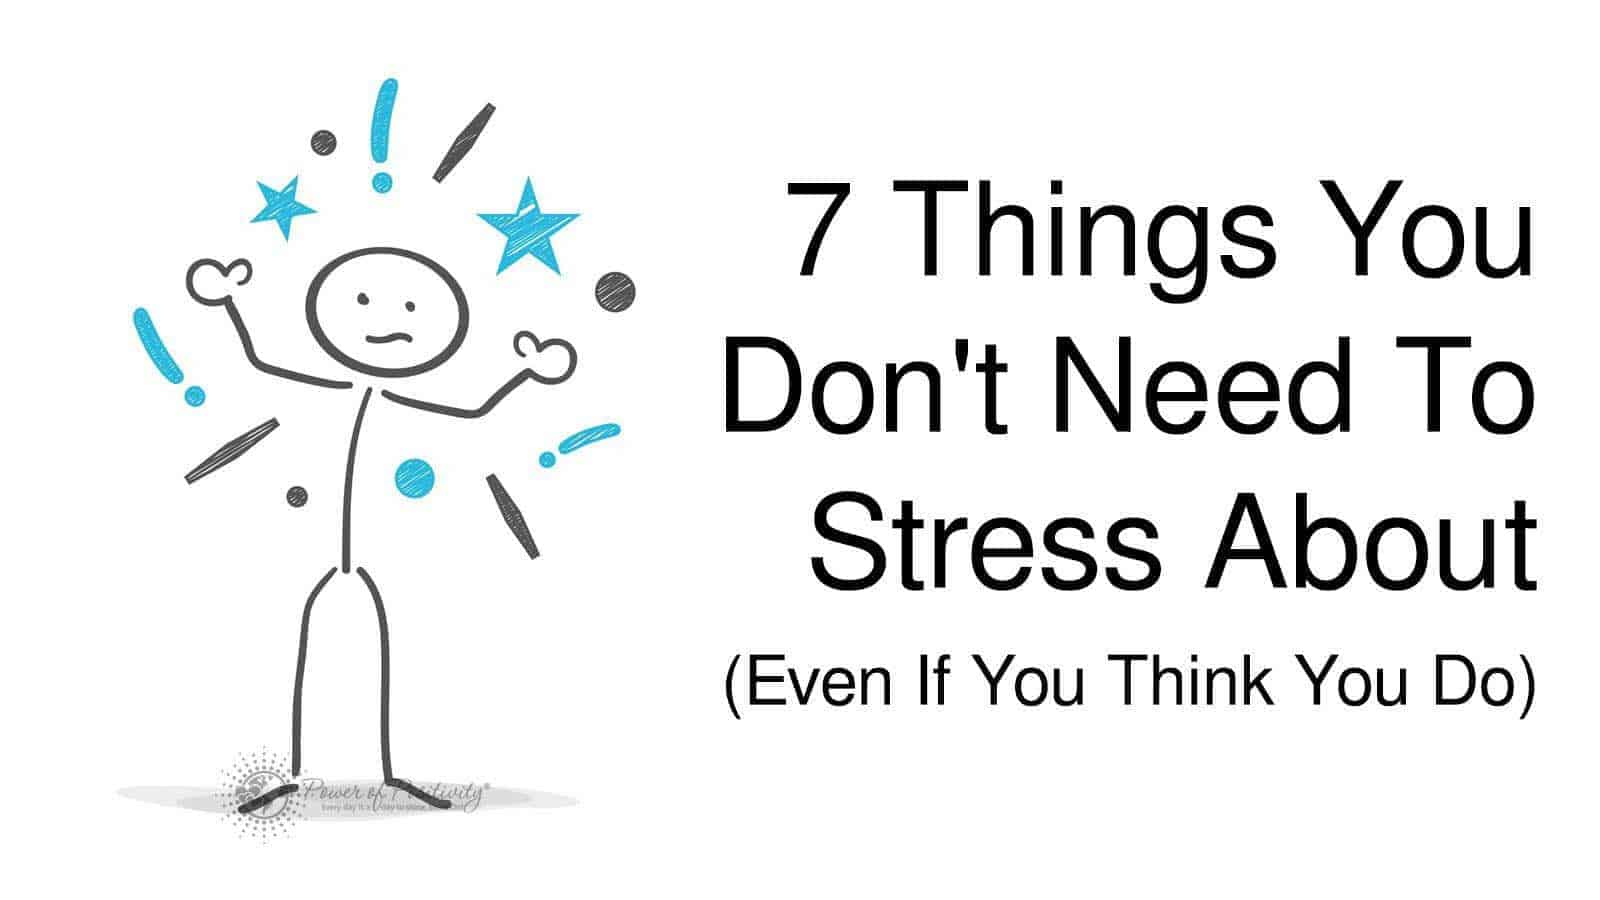 7 Things You Don't Need To Stress About (Even If You Think You Do)